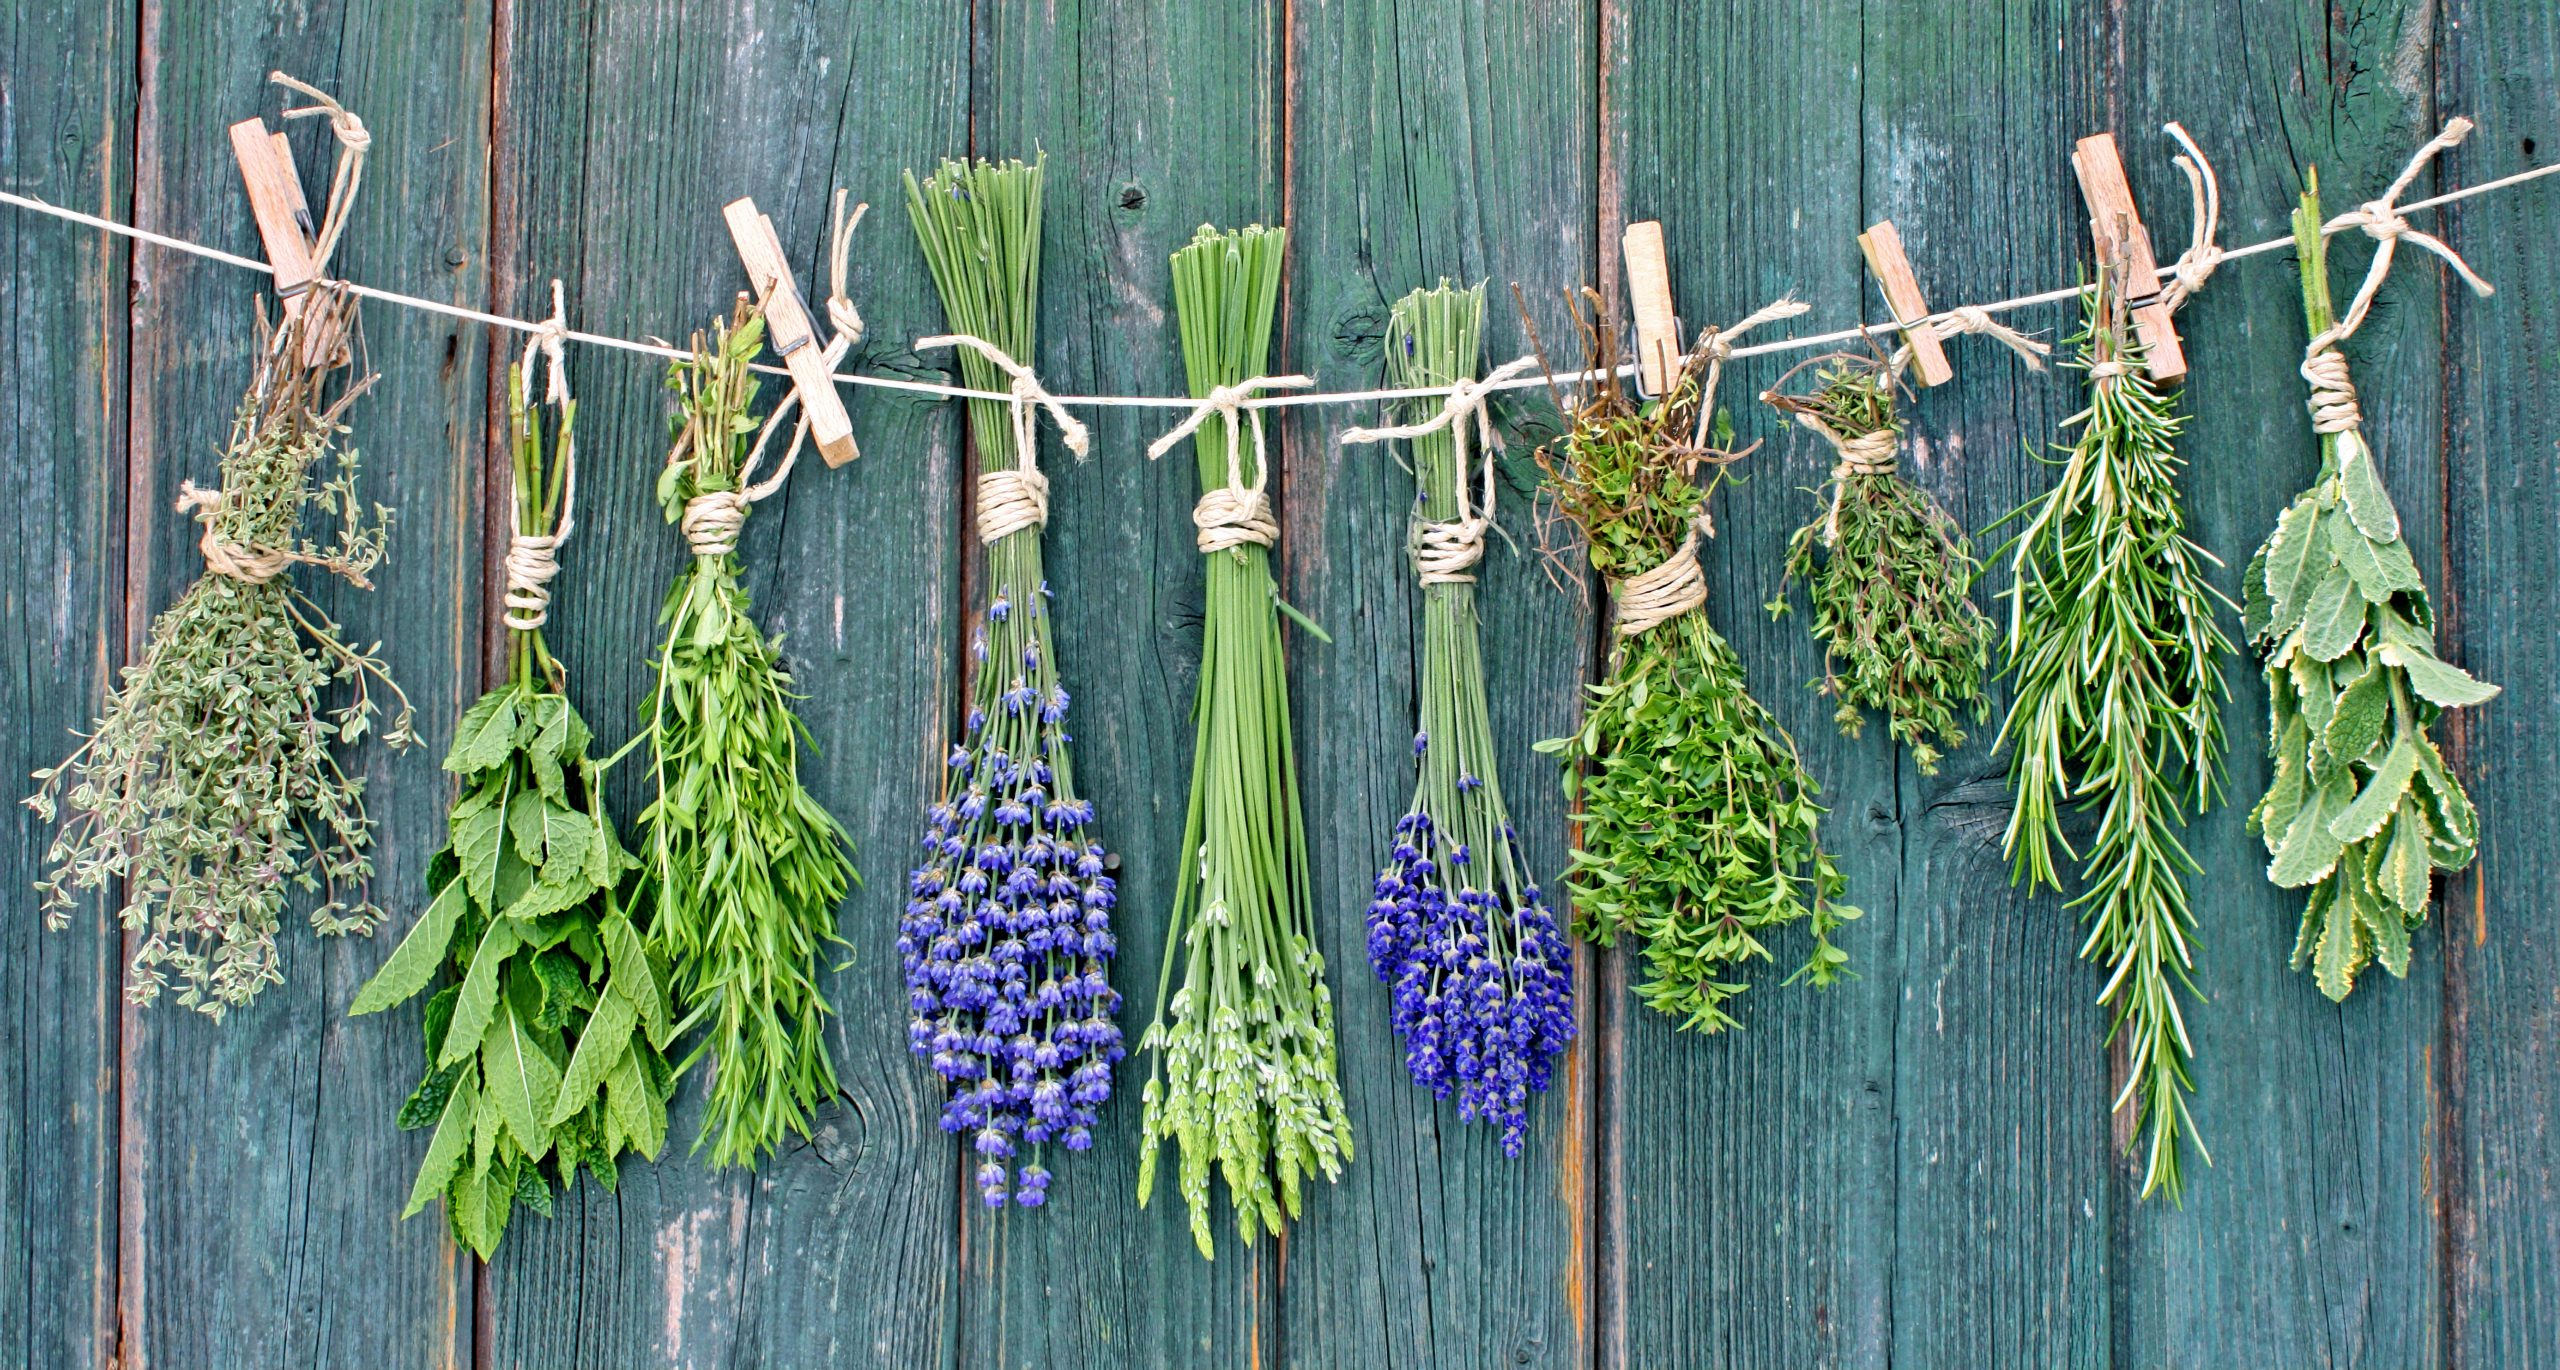 Herbs are so healing for your thyroid and for a healthy life! #herbsforhealth #thyroidhealth #hypothyroid